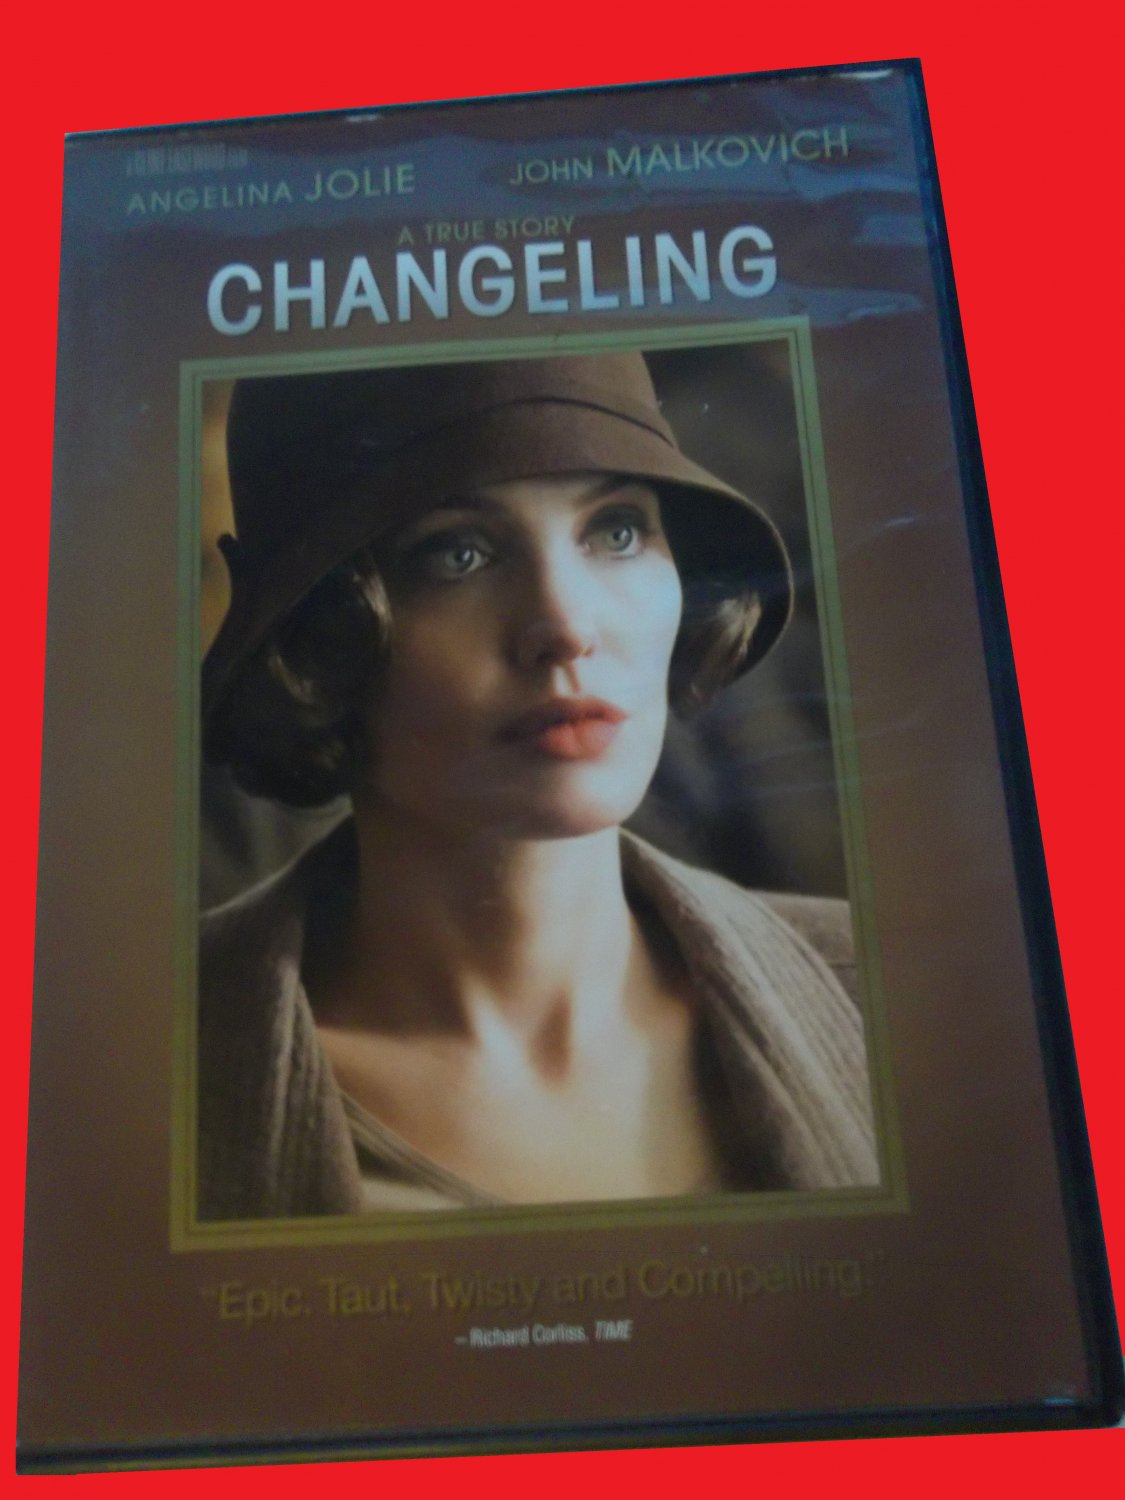 CHANGELING (FREE DVD & FAST SHIPPING) ANGELINA JOLIE (TRUE STORY/DRAMA/THRILLER)